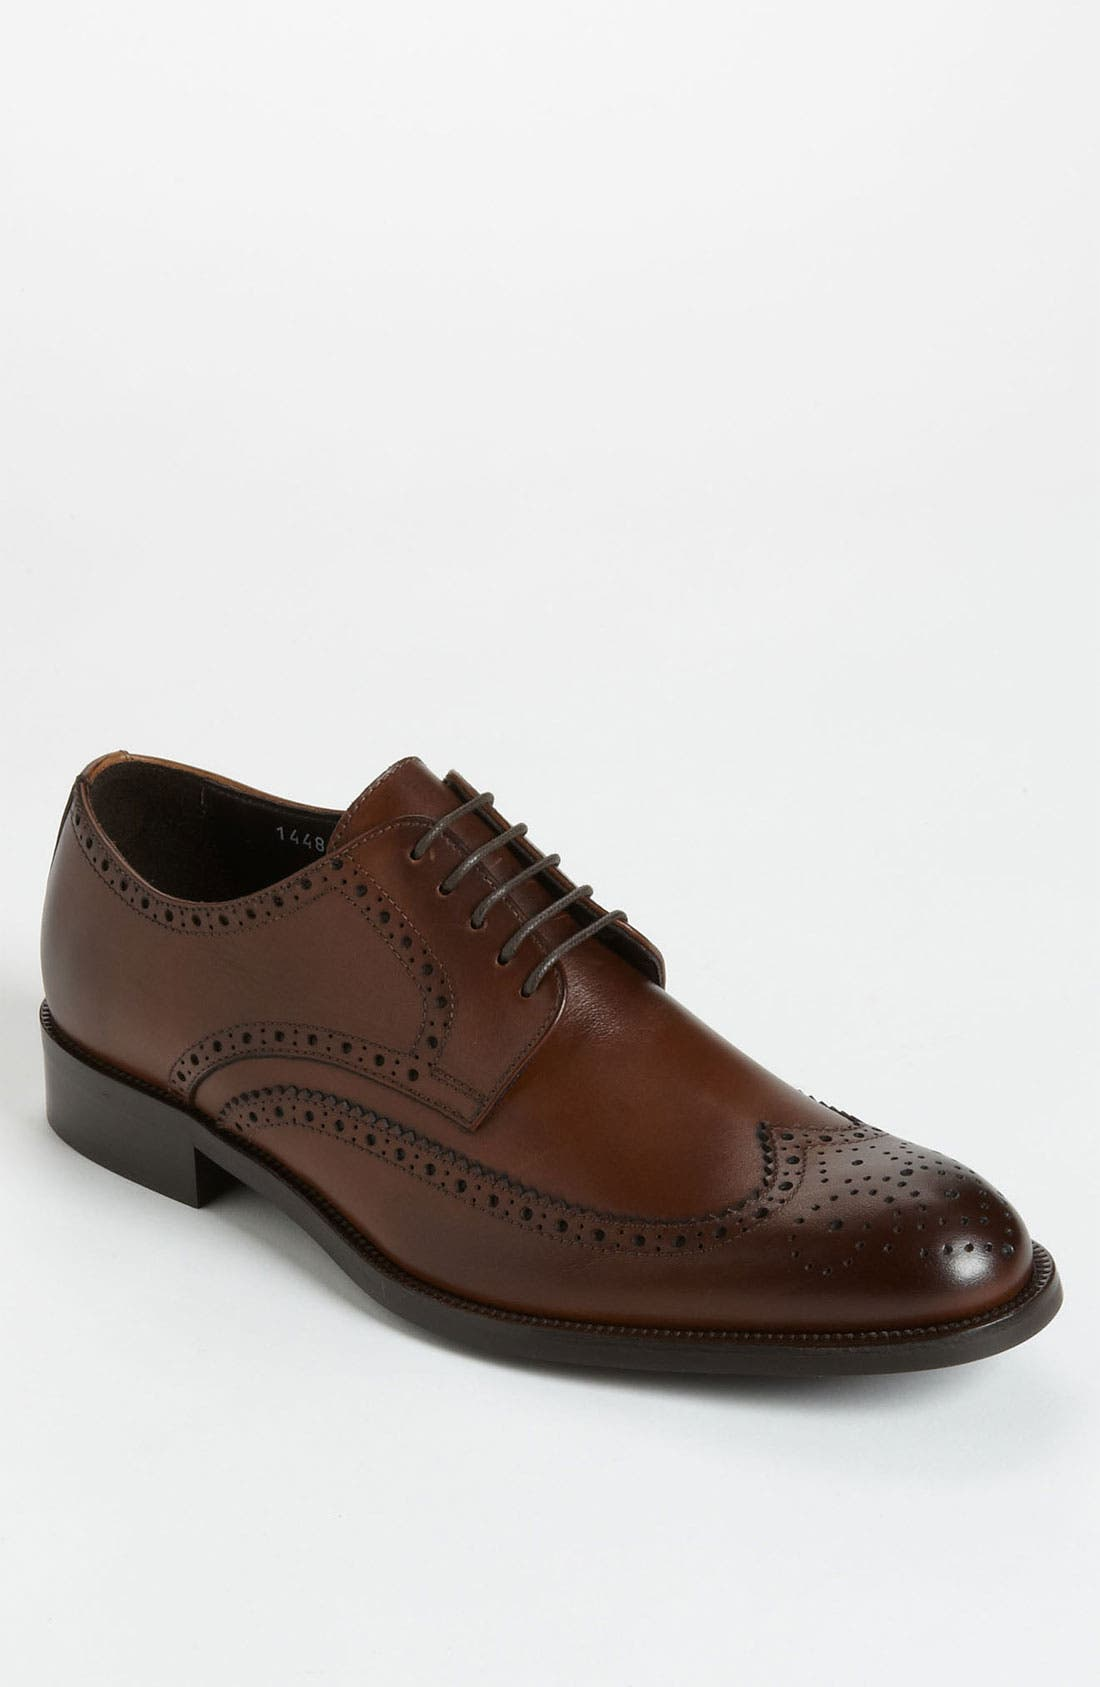 Main Image - To Boot New York 'Jake' Wingtip